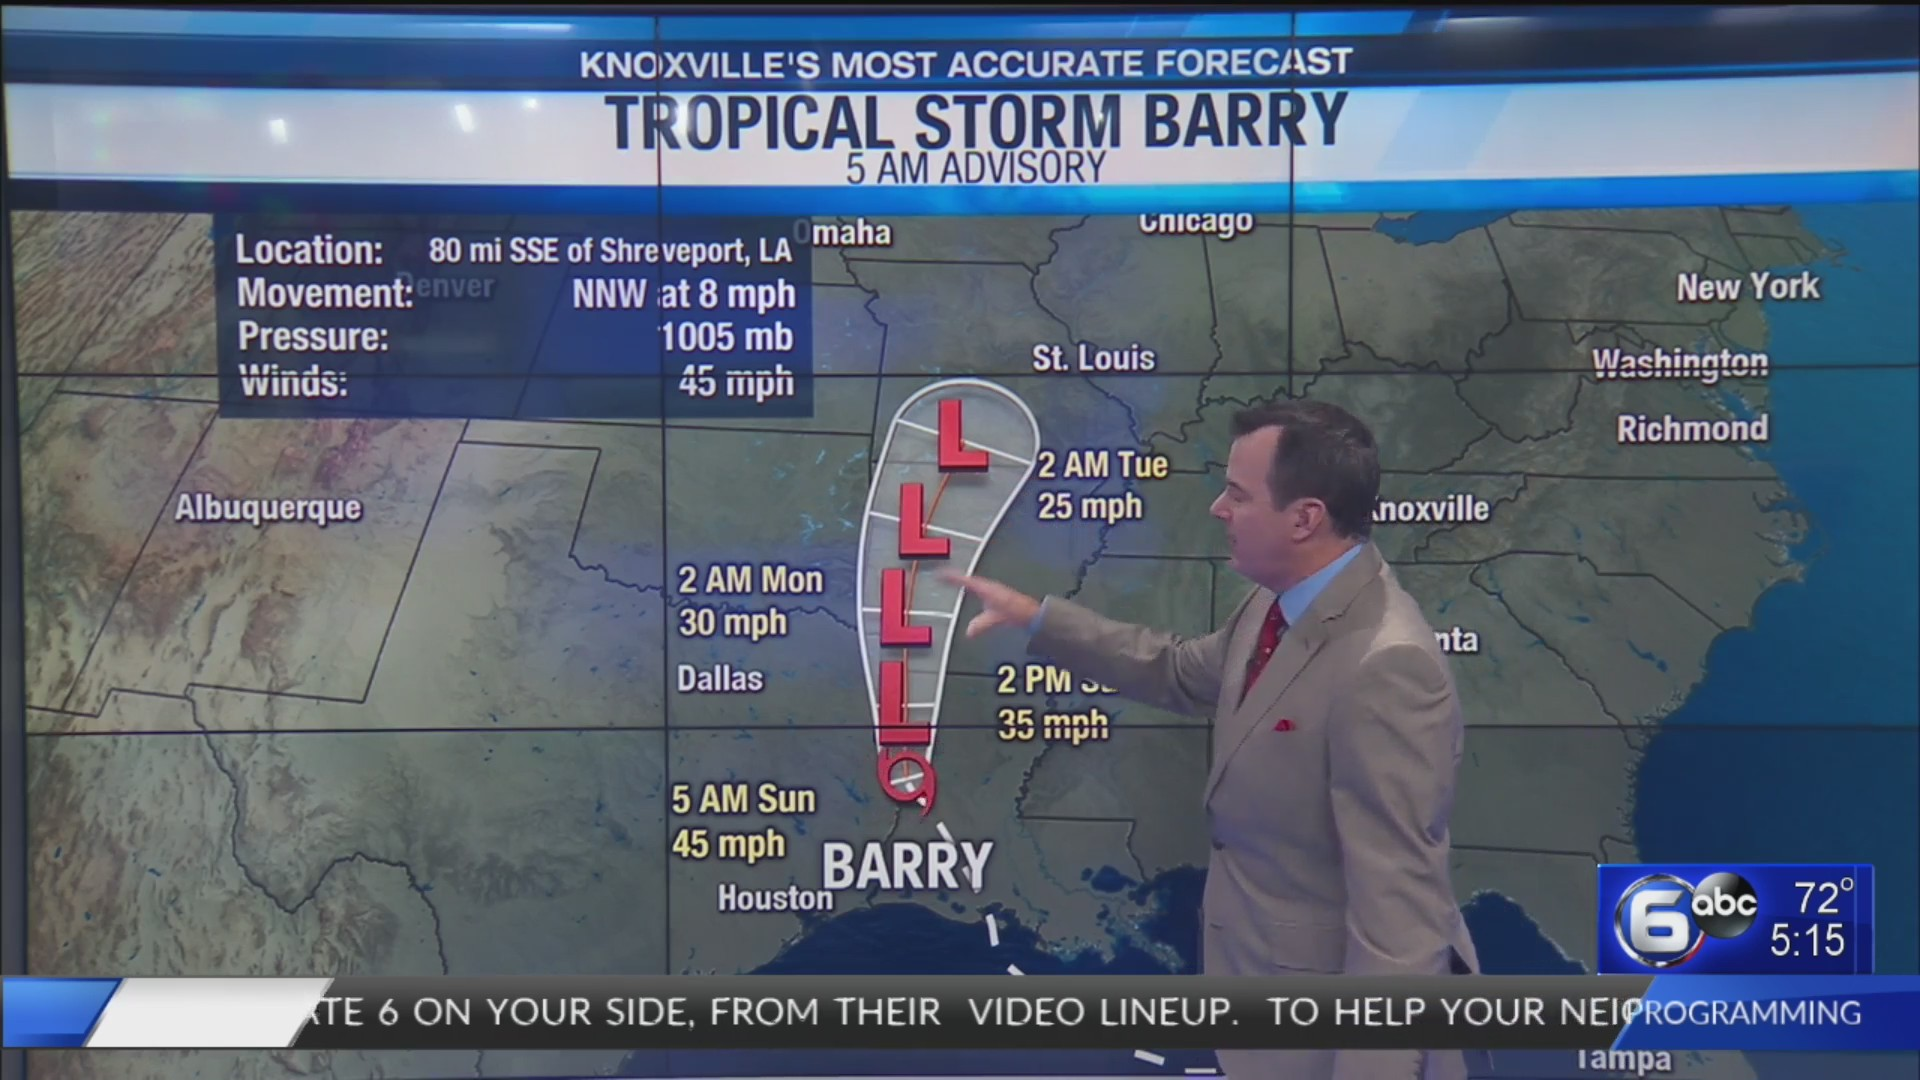 DIRECTV, AT&T U-verse customers: Continue watching WATE newscasts